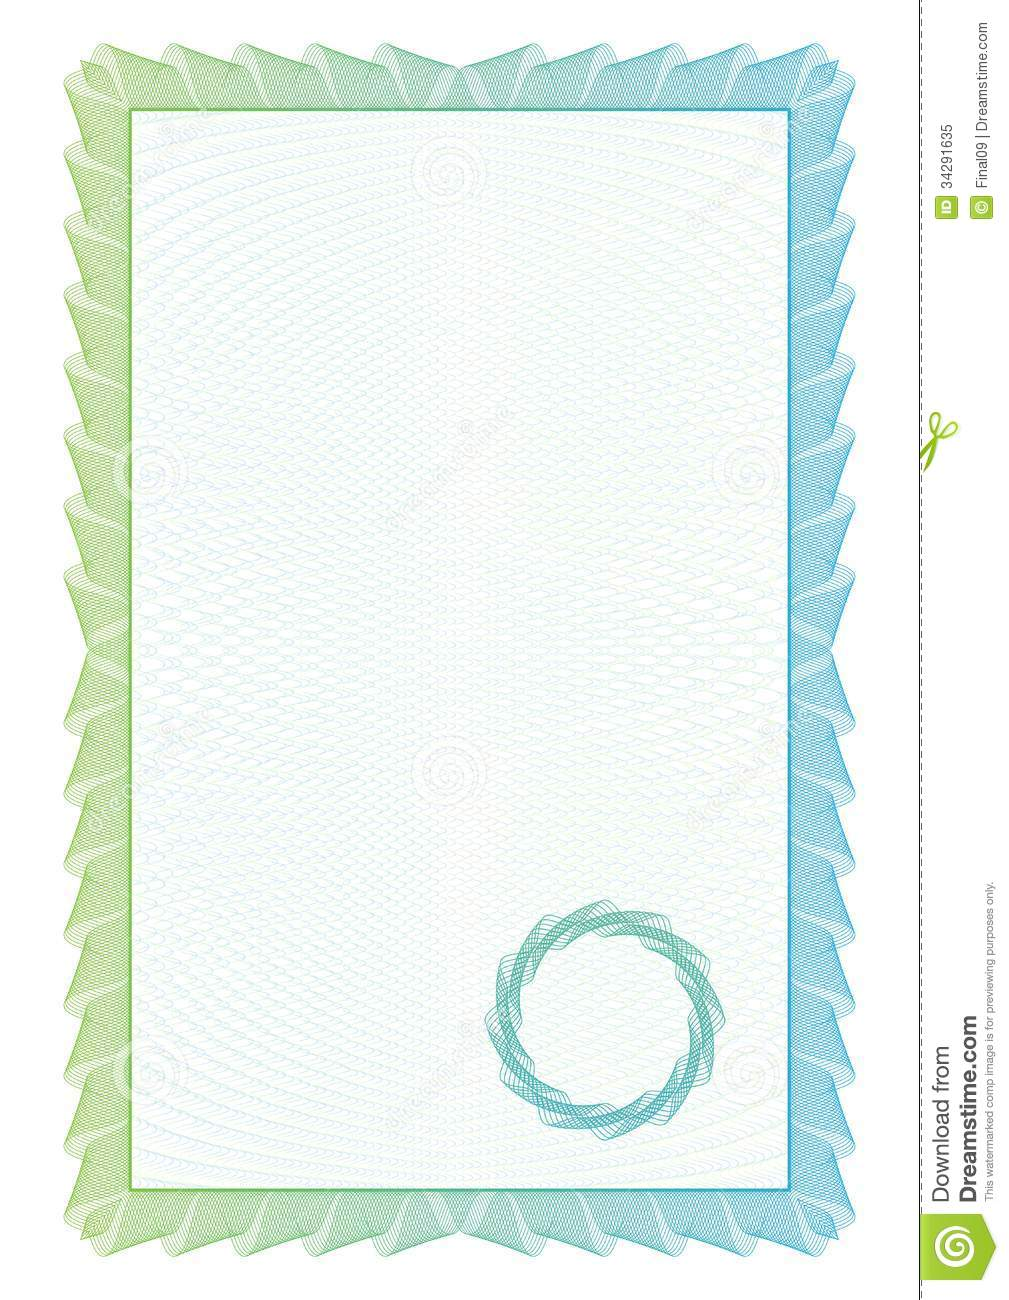 Template Border Diplomas Certificate Stock Vector Illustration Of